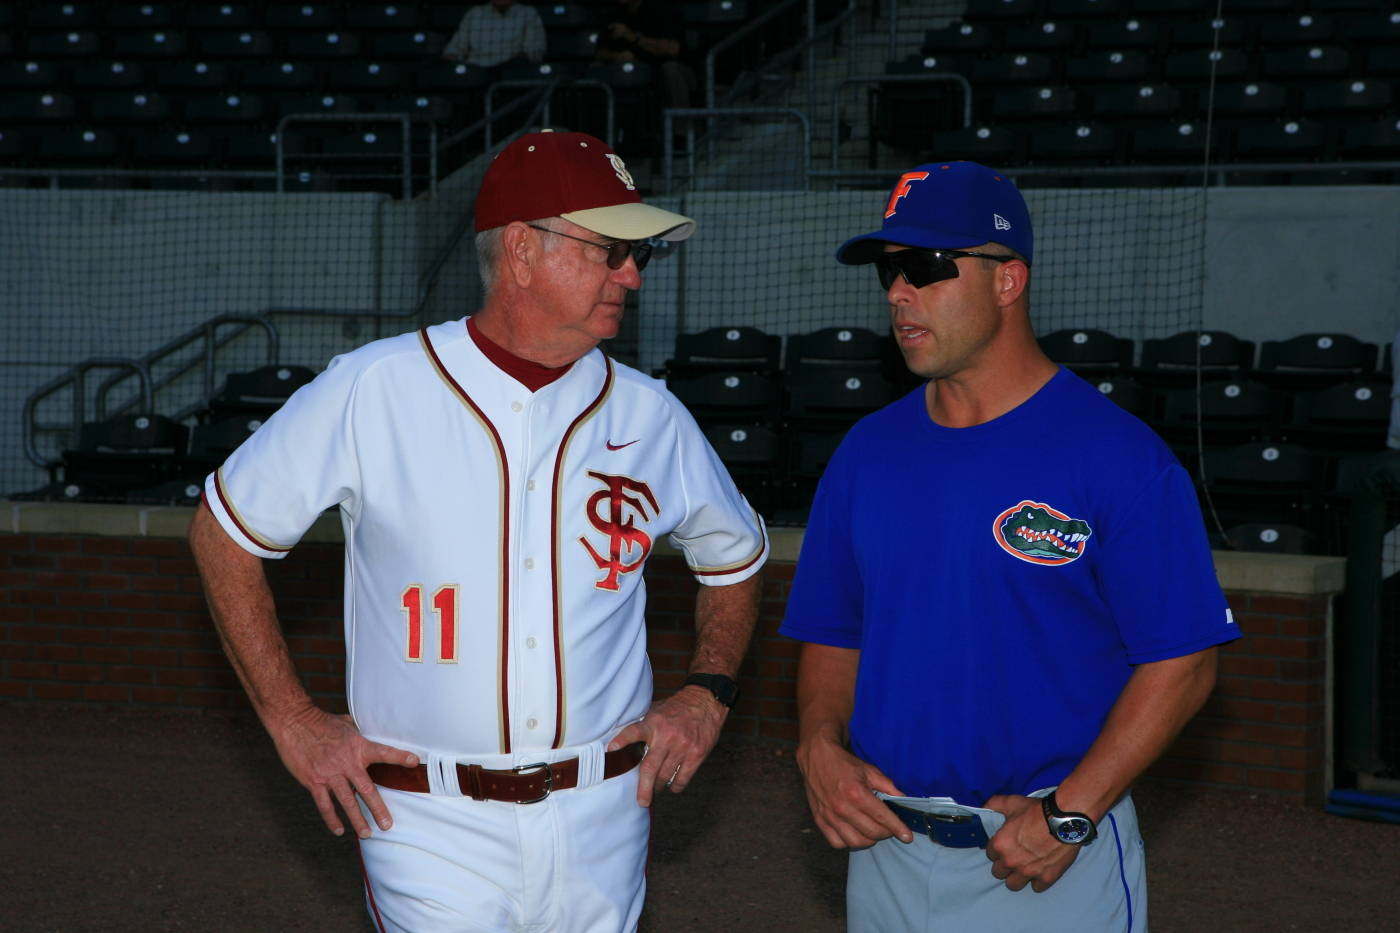 Mike Martin and Kevin O'Sullivan chat during pregame warmups in Jacksonville